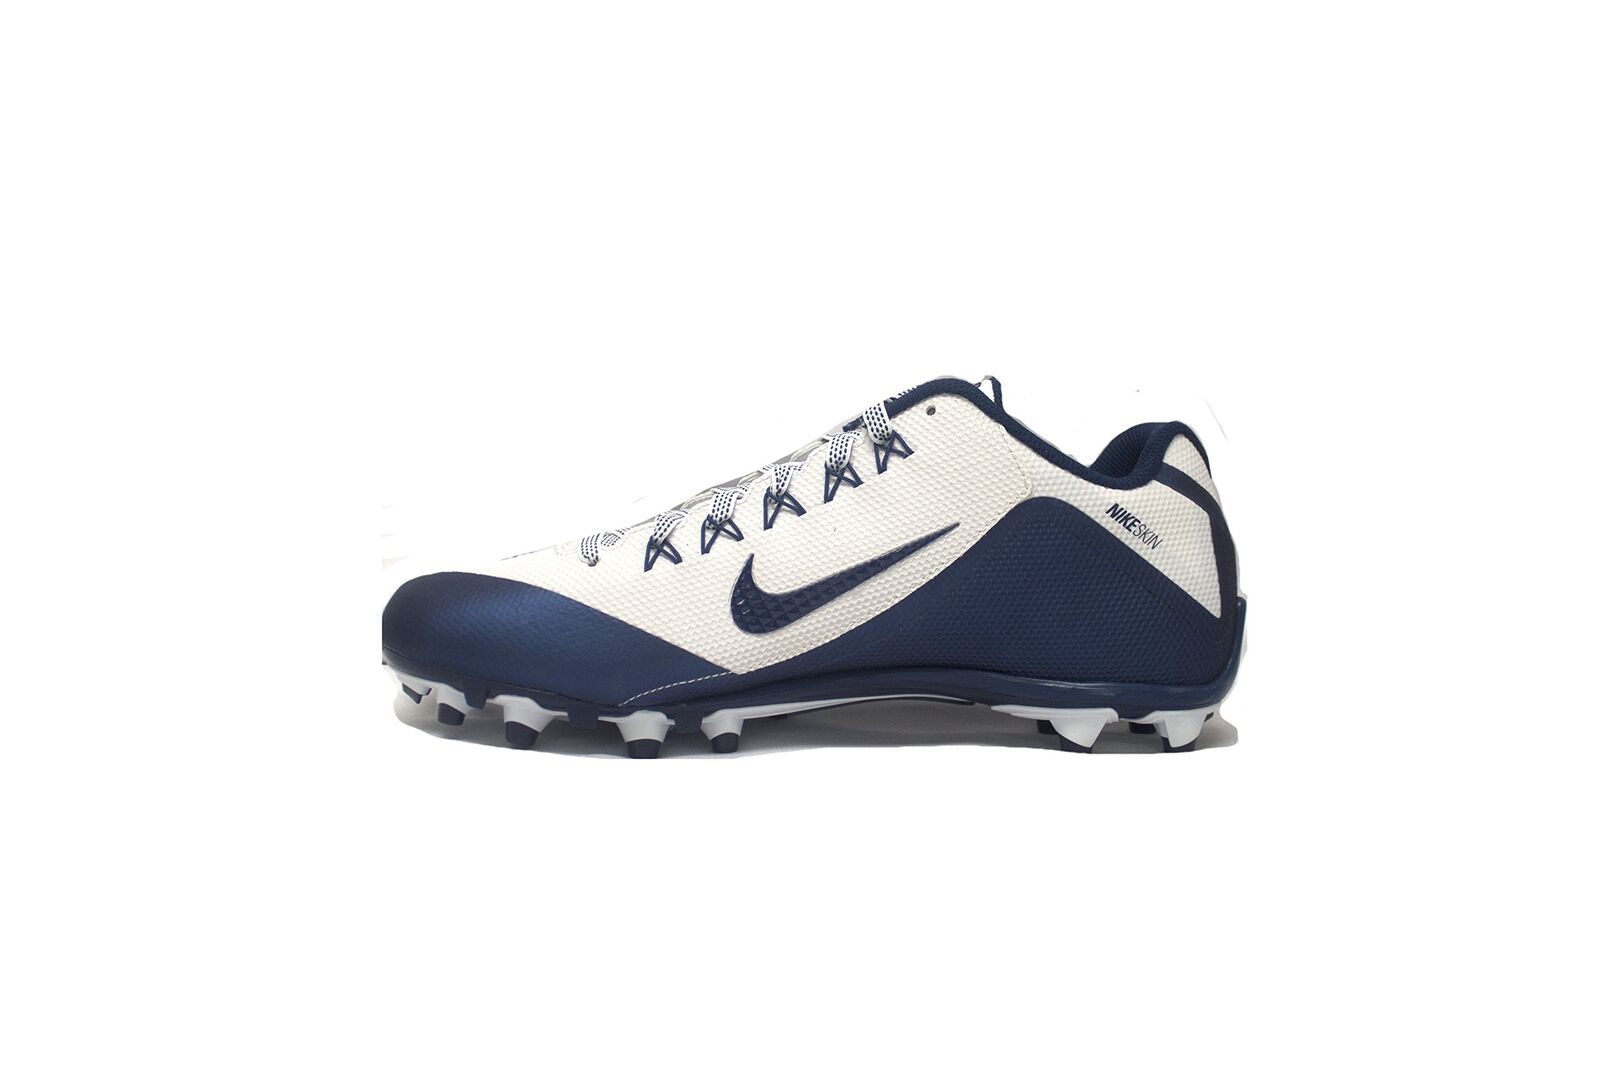 NIKE Alpha Pro 2 TD Football Cleats (White Navy)